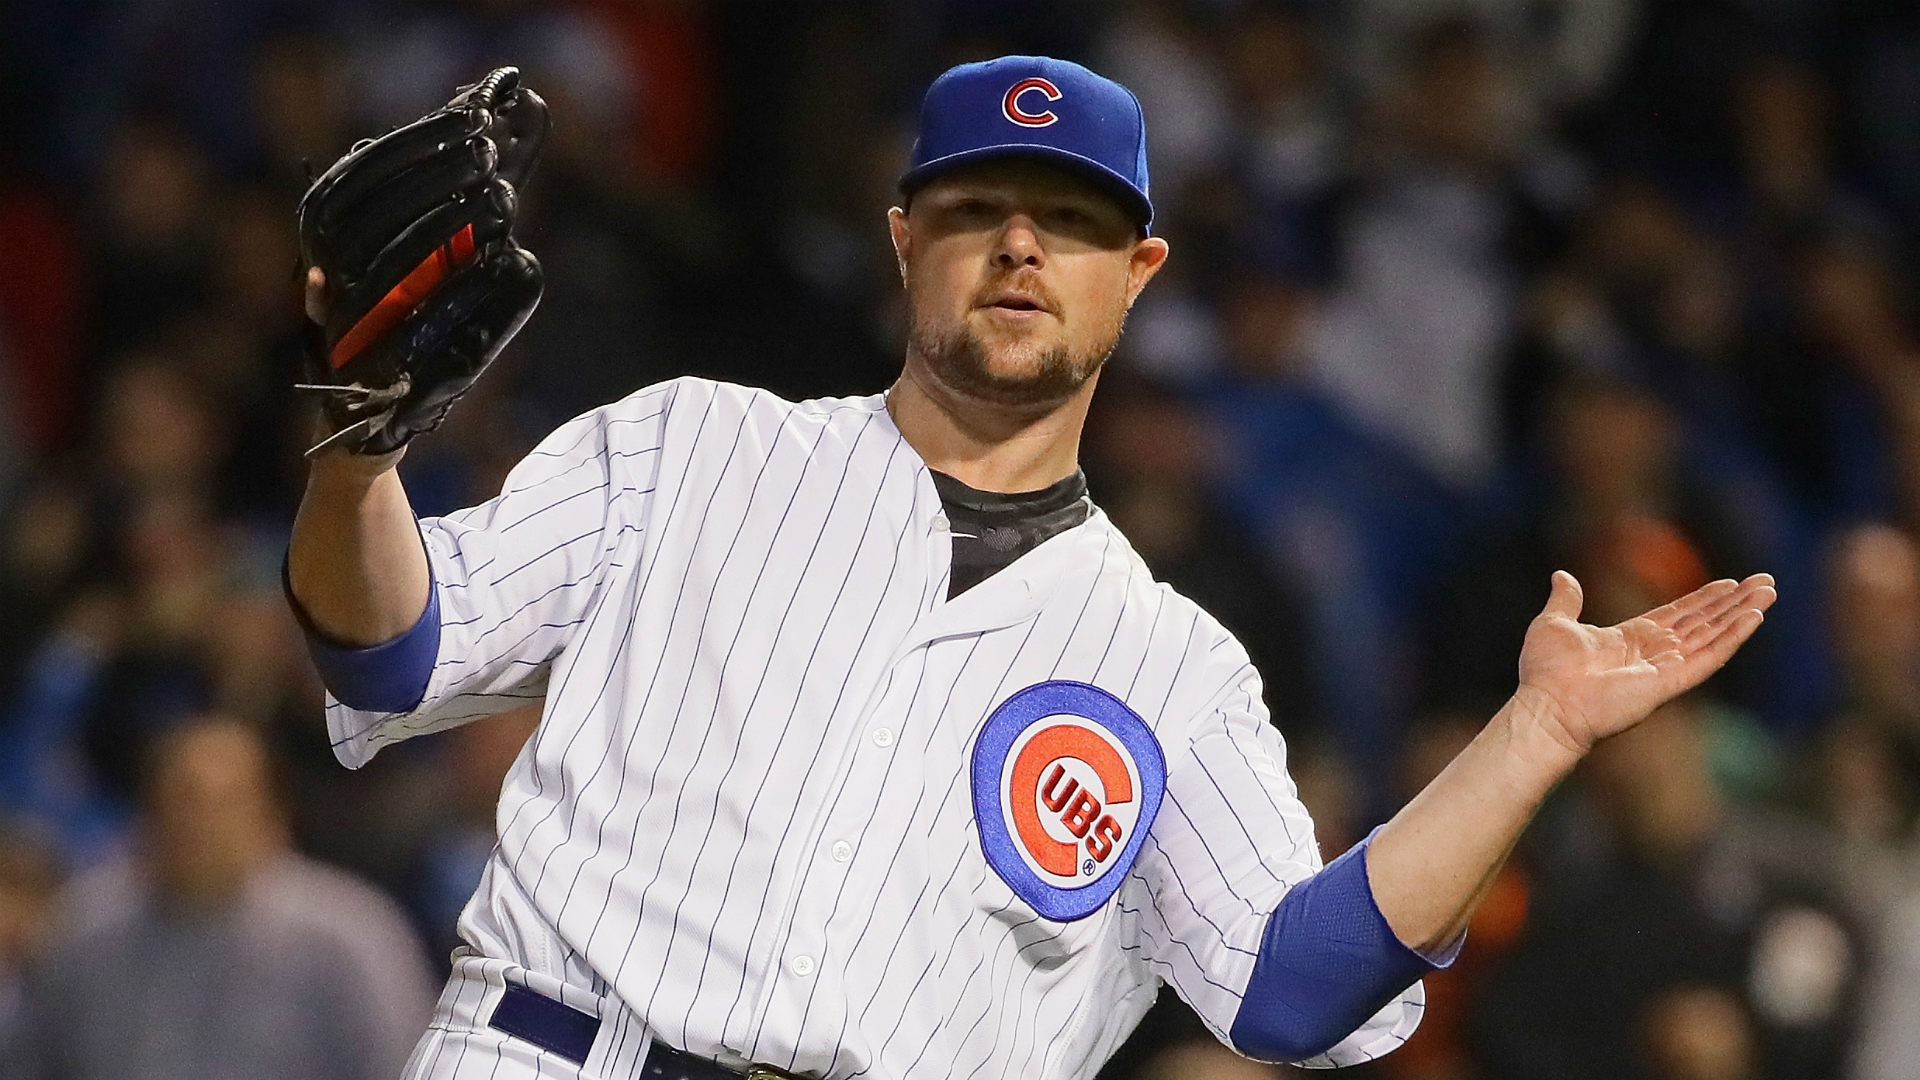 Jon Lester knows he can still compete at 35: 'Why not? I'm not dead'